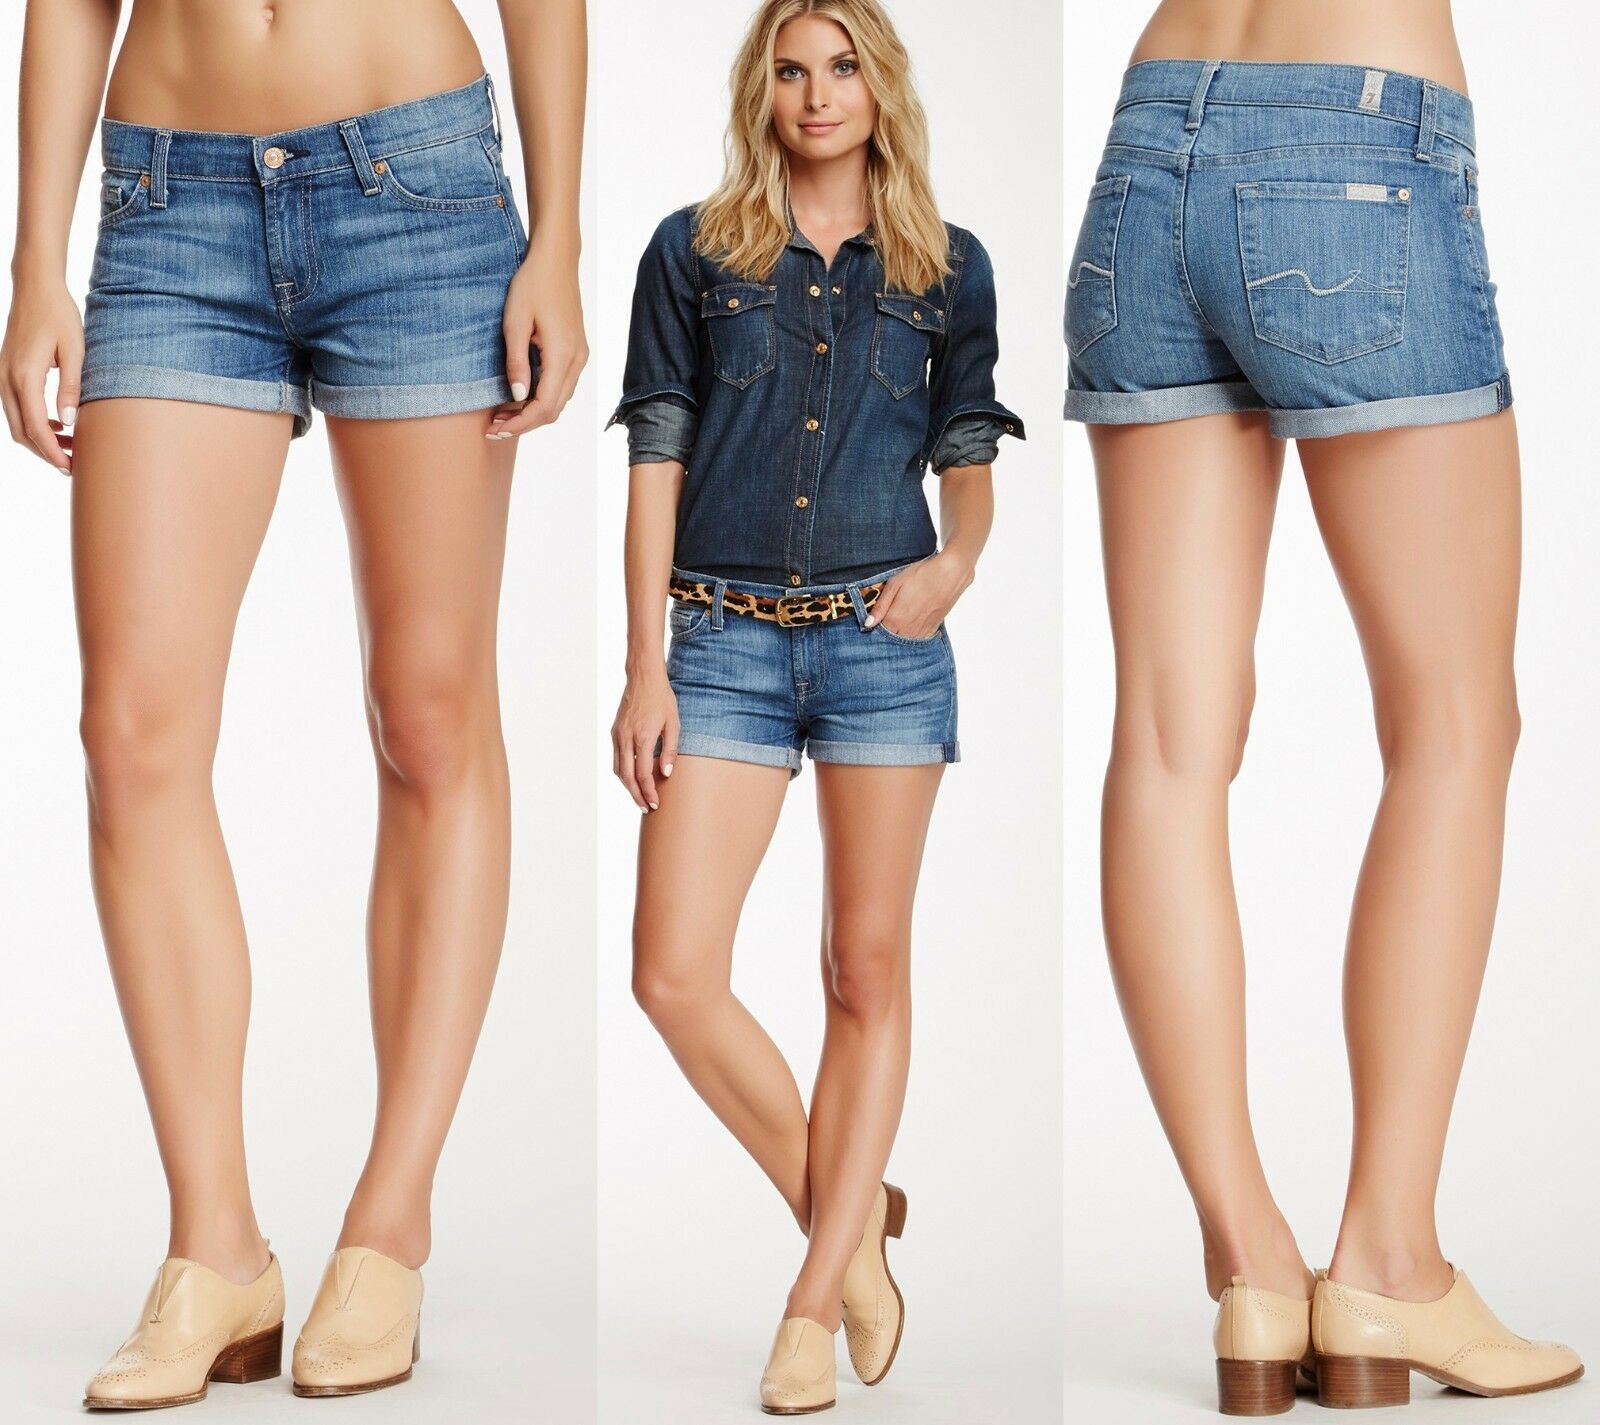 158 7 For All Mankind Fold Over Cuffed Pleasant Street bluee Indigo Denim Shorts